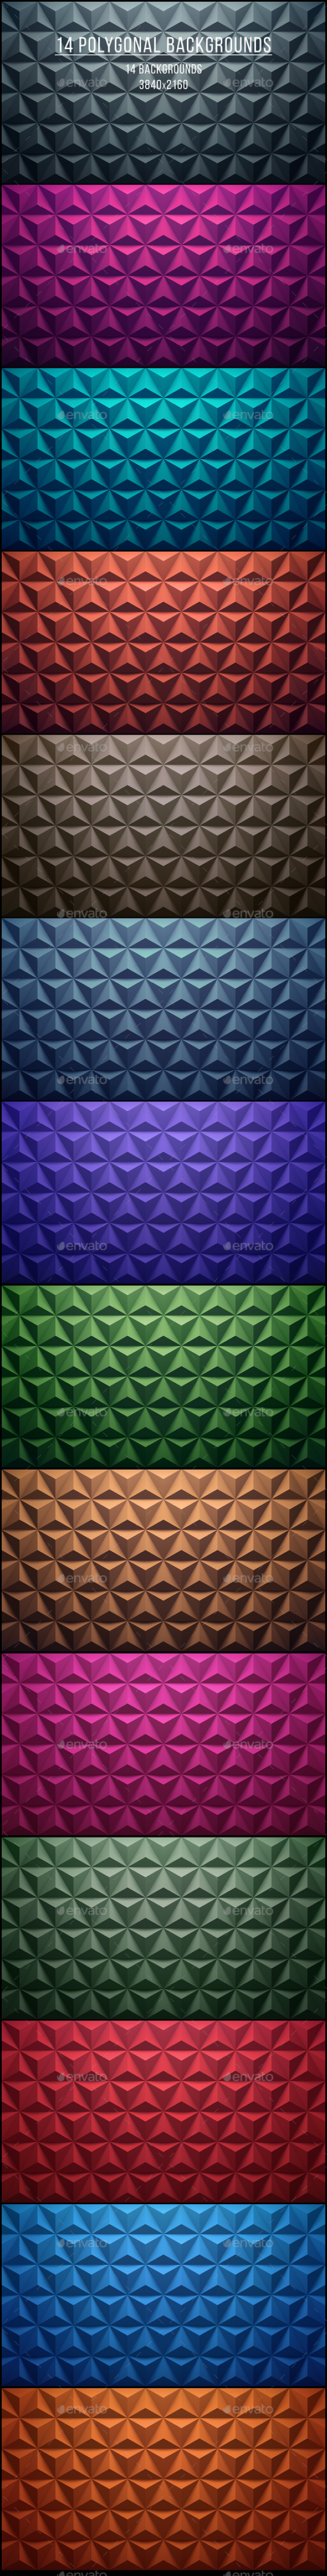 14 Polygonal Backgrounds - Abstract Backgrounds